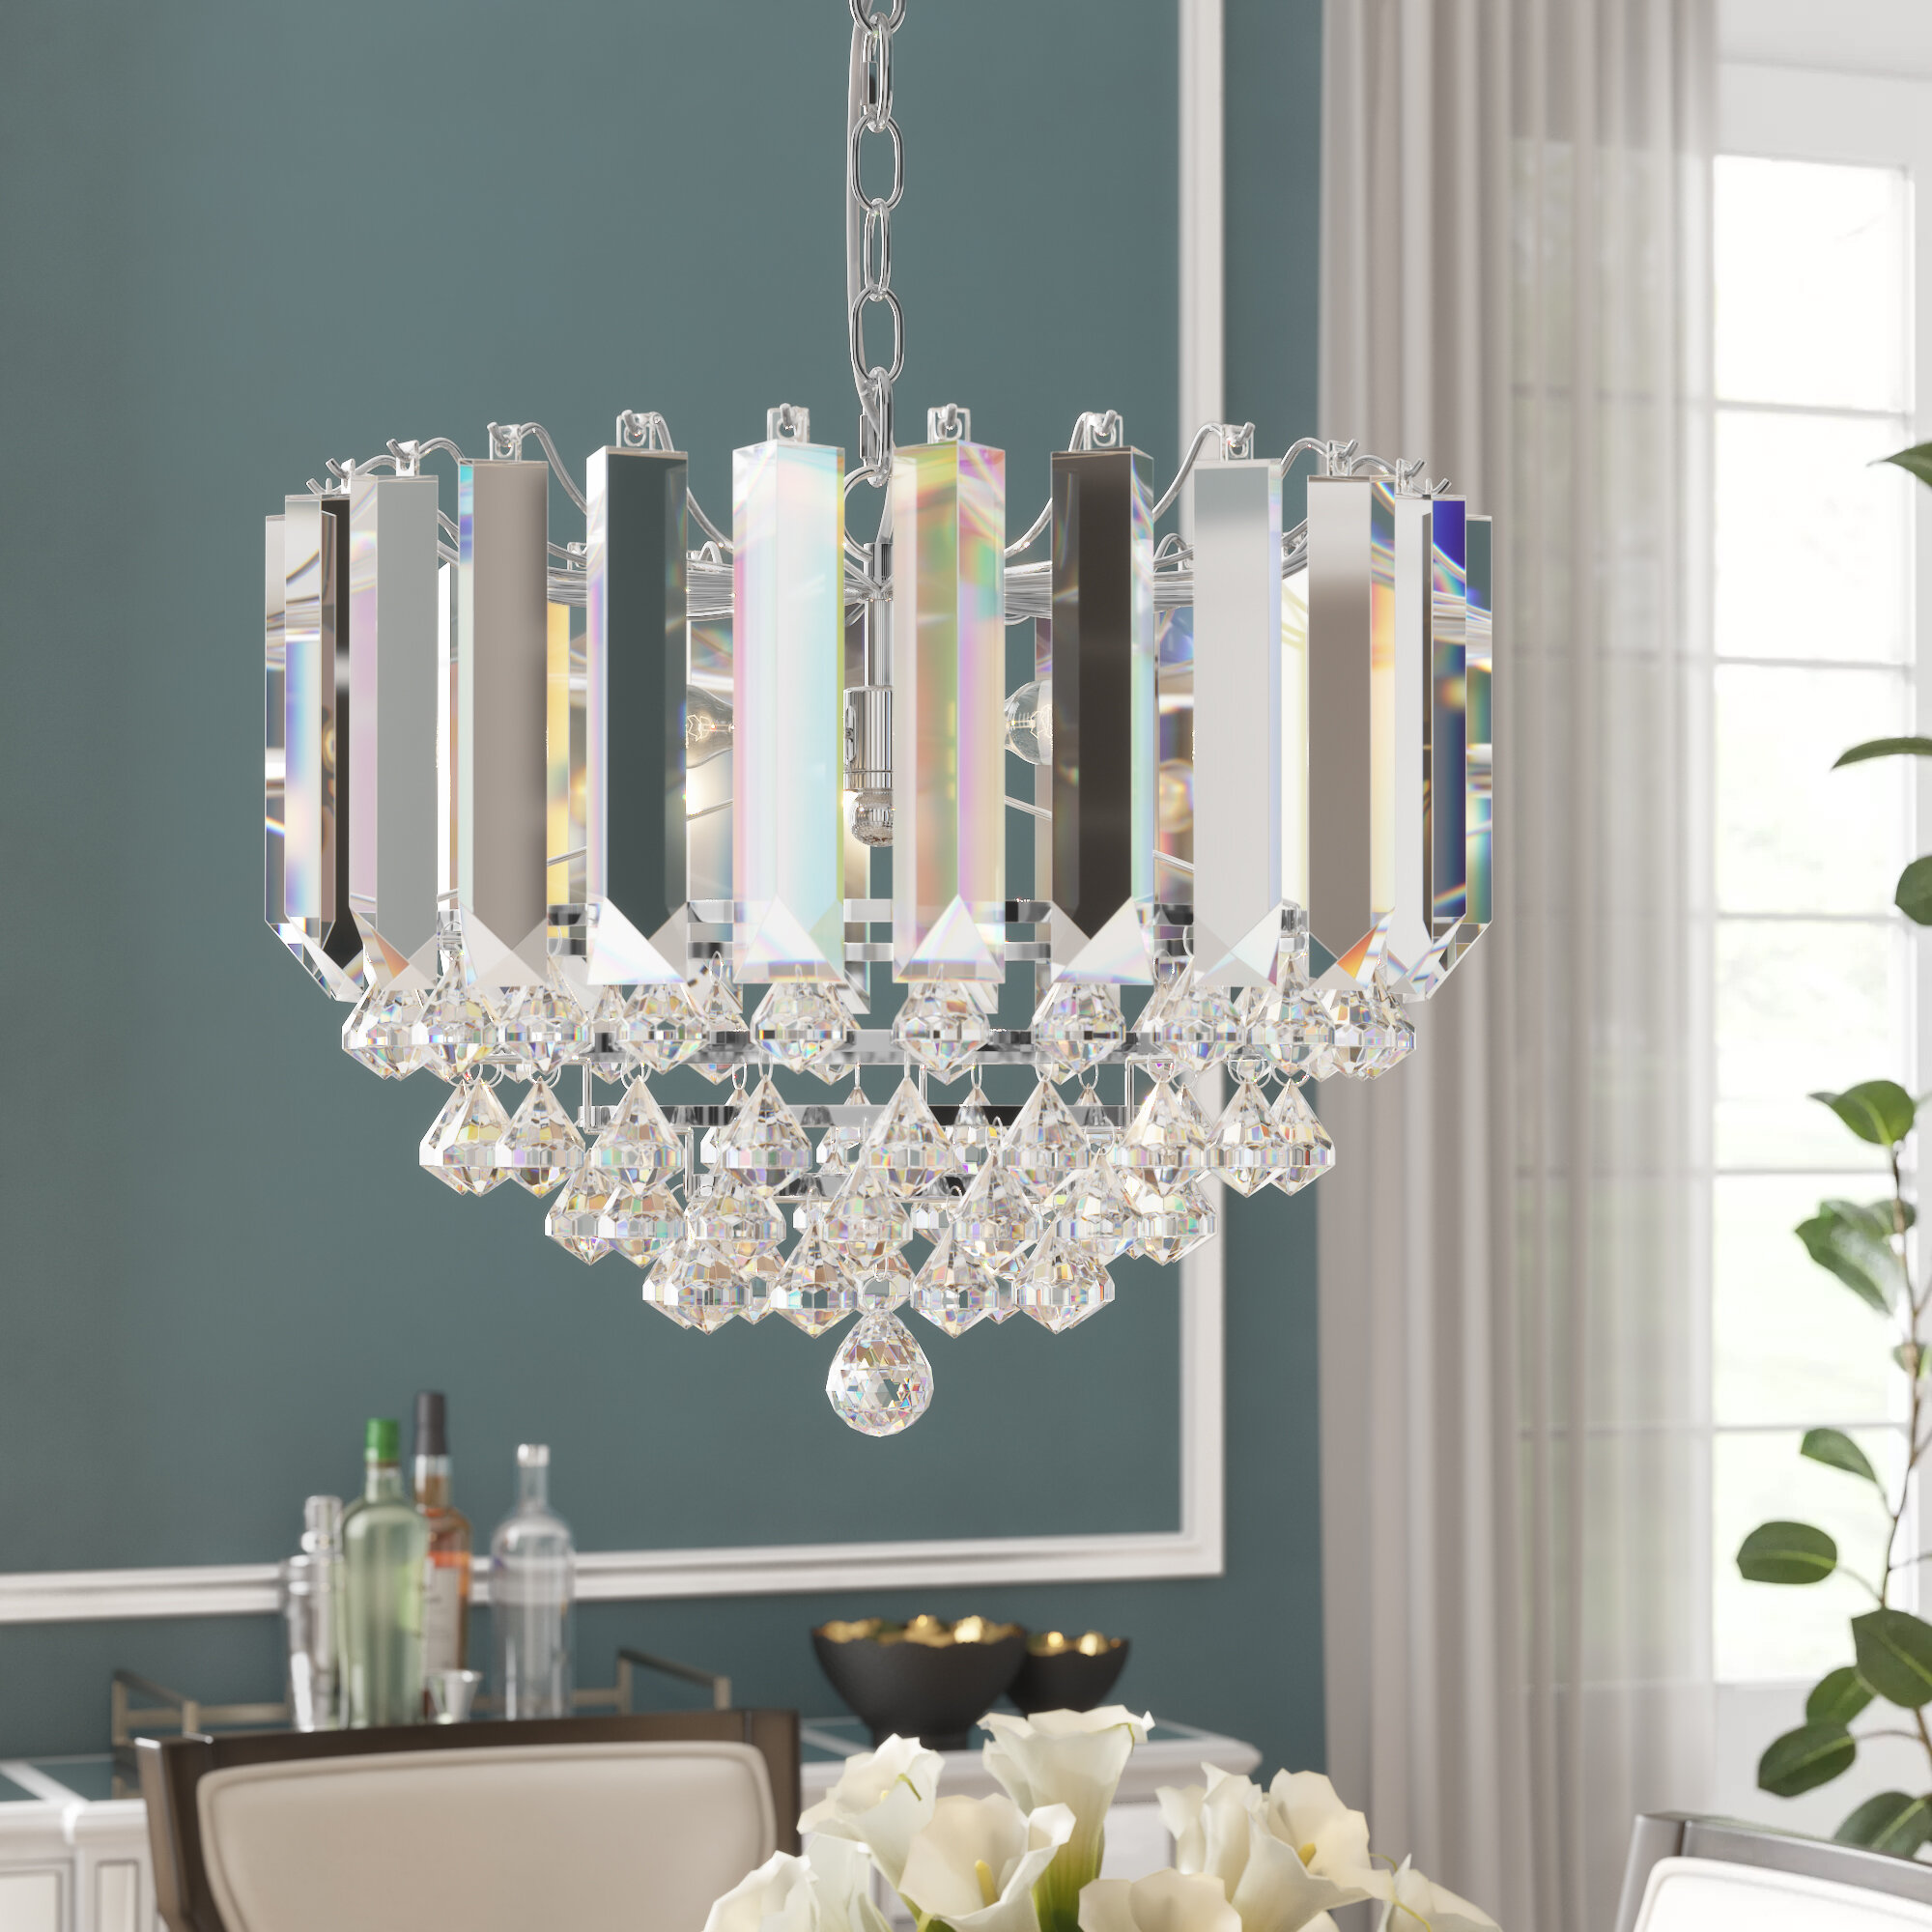 Genial Chrome Chandeliers Sale   Up To 65% Off Until September 30th ...